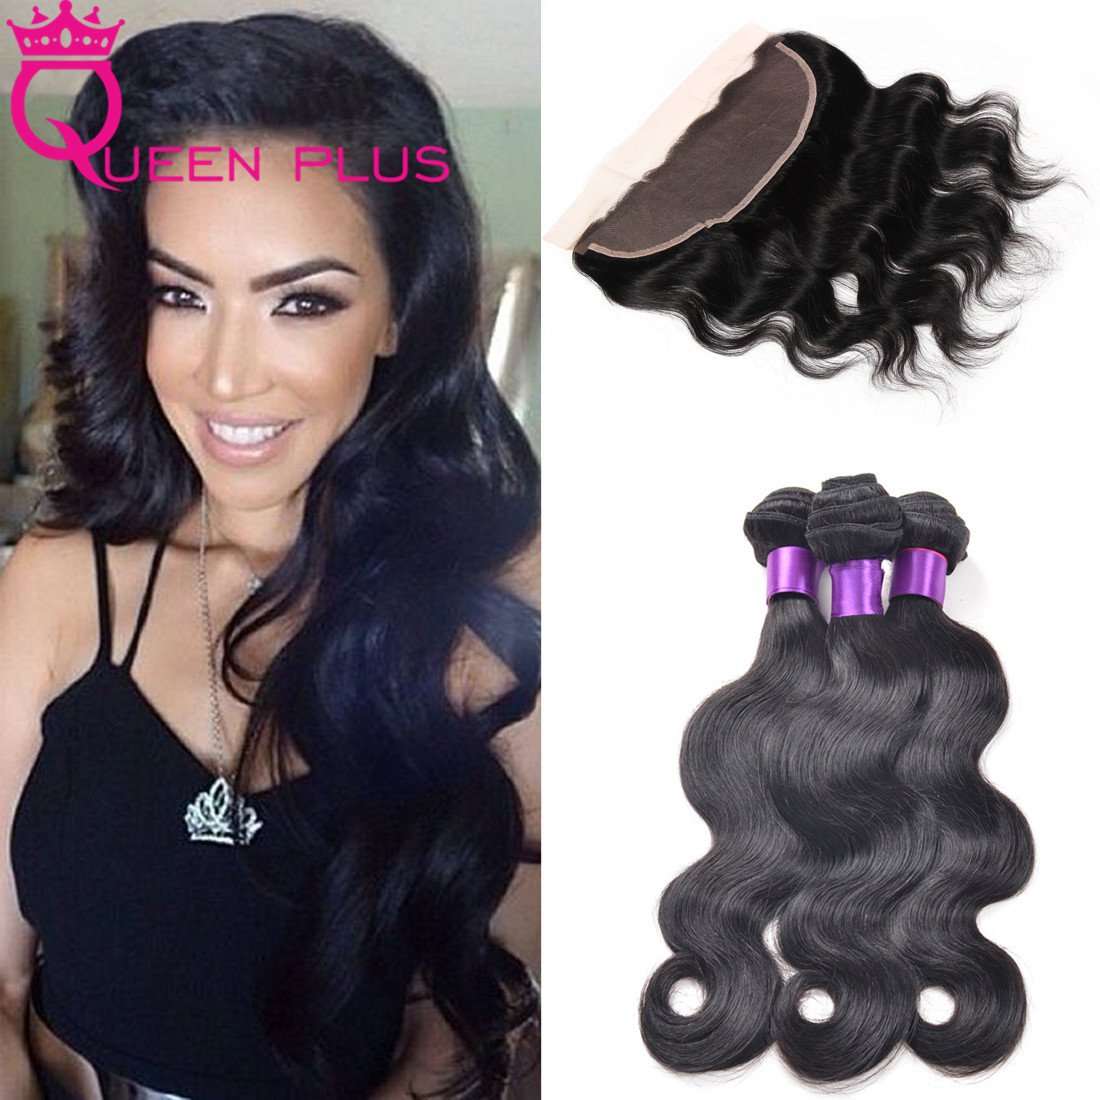 Amazon queen plus hair body weave 7a brazilian virgin hair amazon queen plus hair body weave 7a brazilian virgin hair free part lace frontal closure 134with 4 bundles natural color weft pmusecretfo Image collections